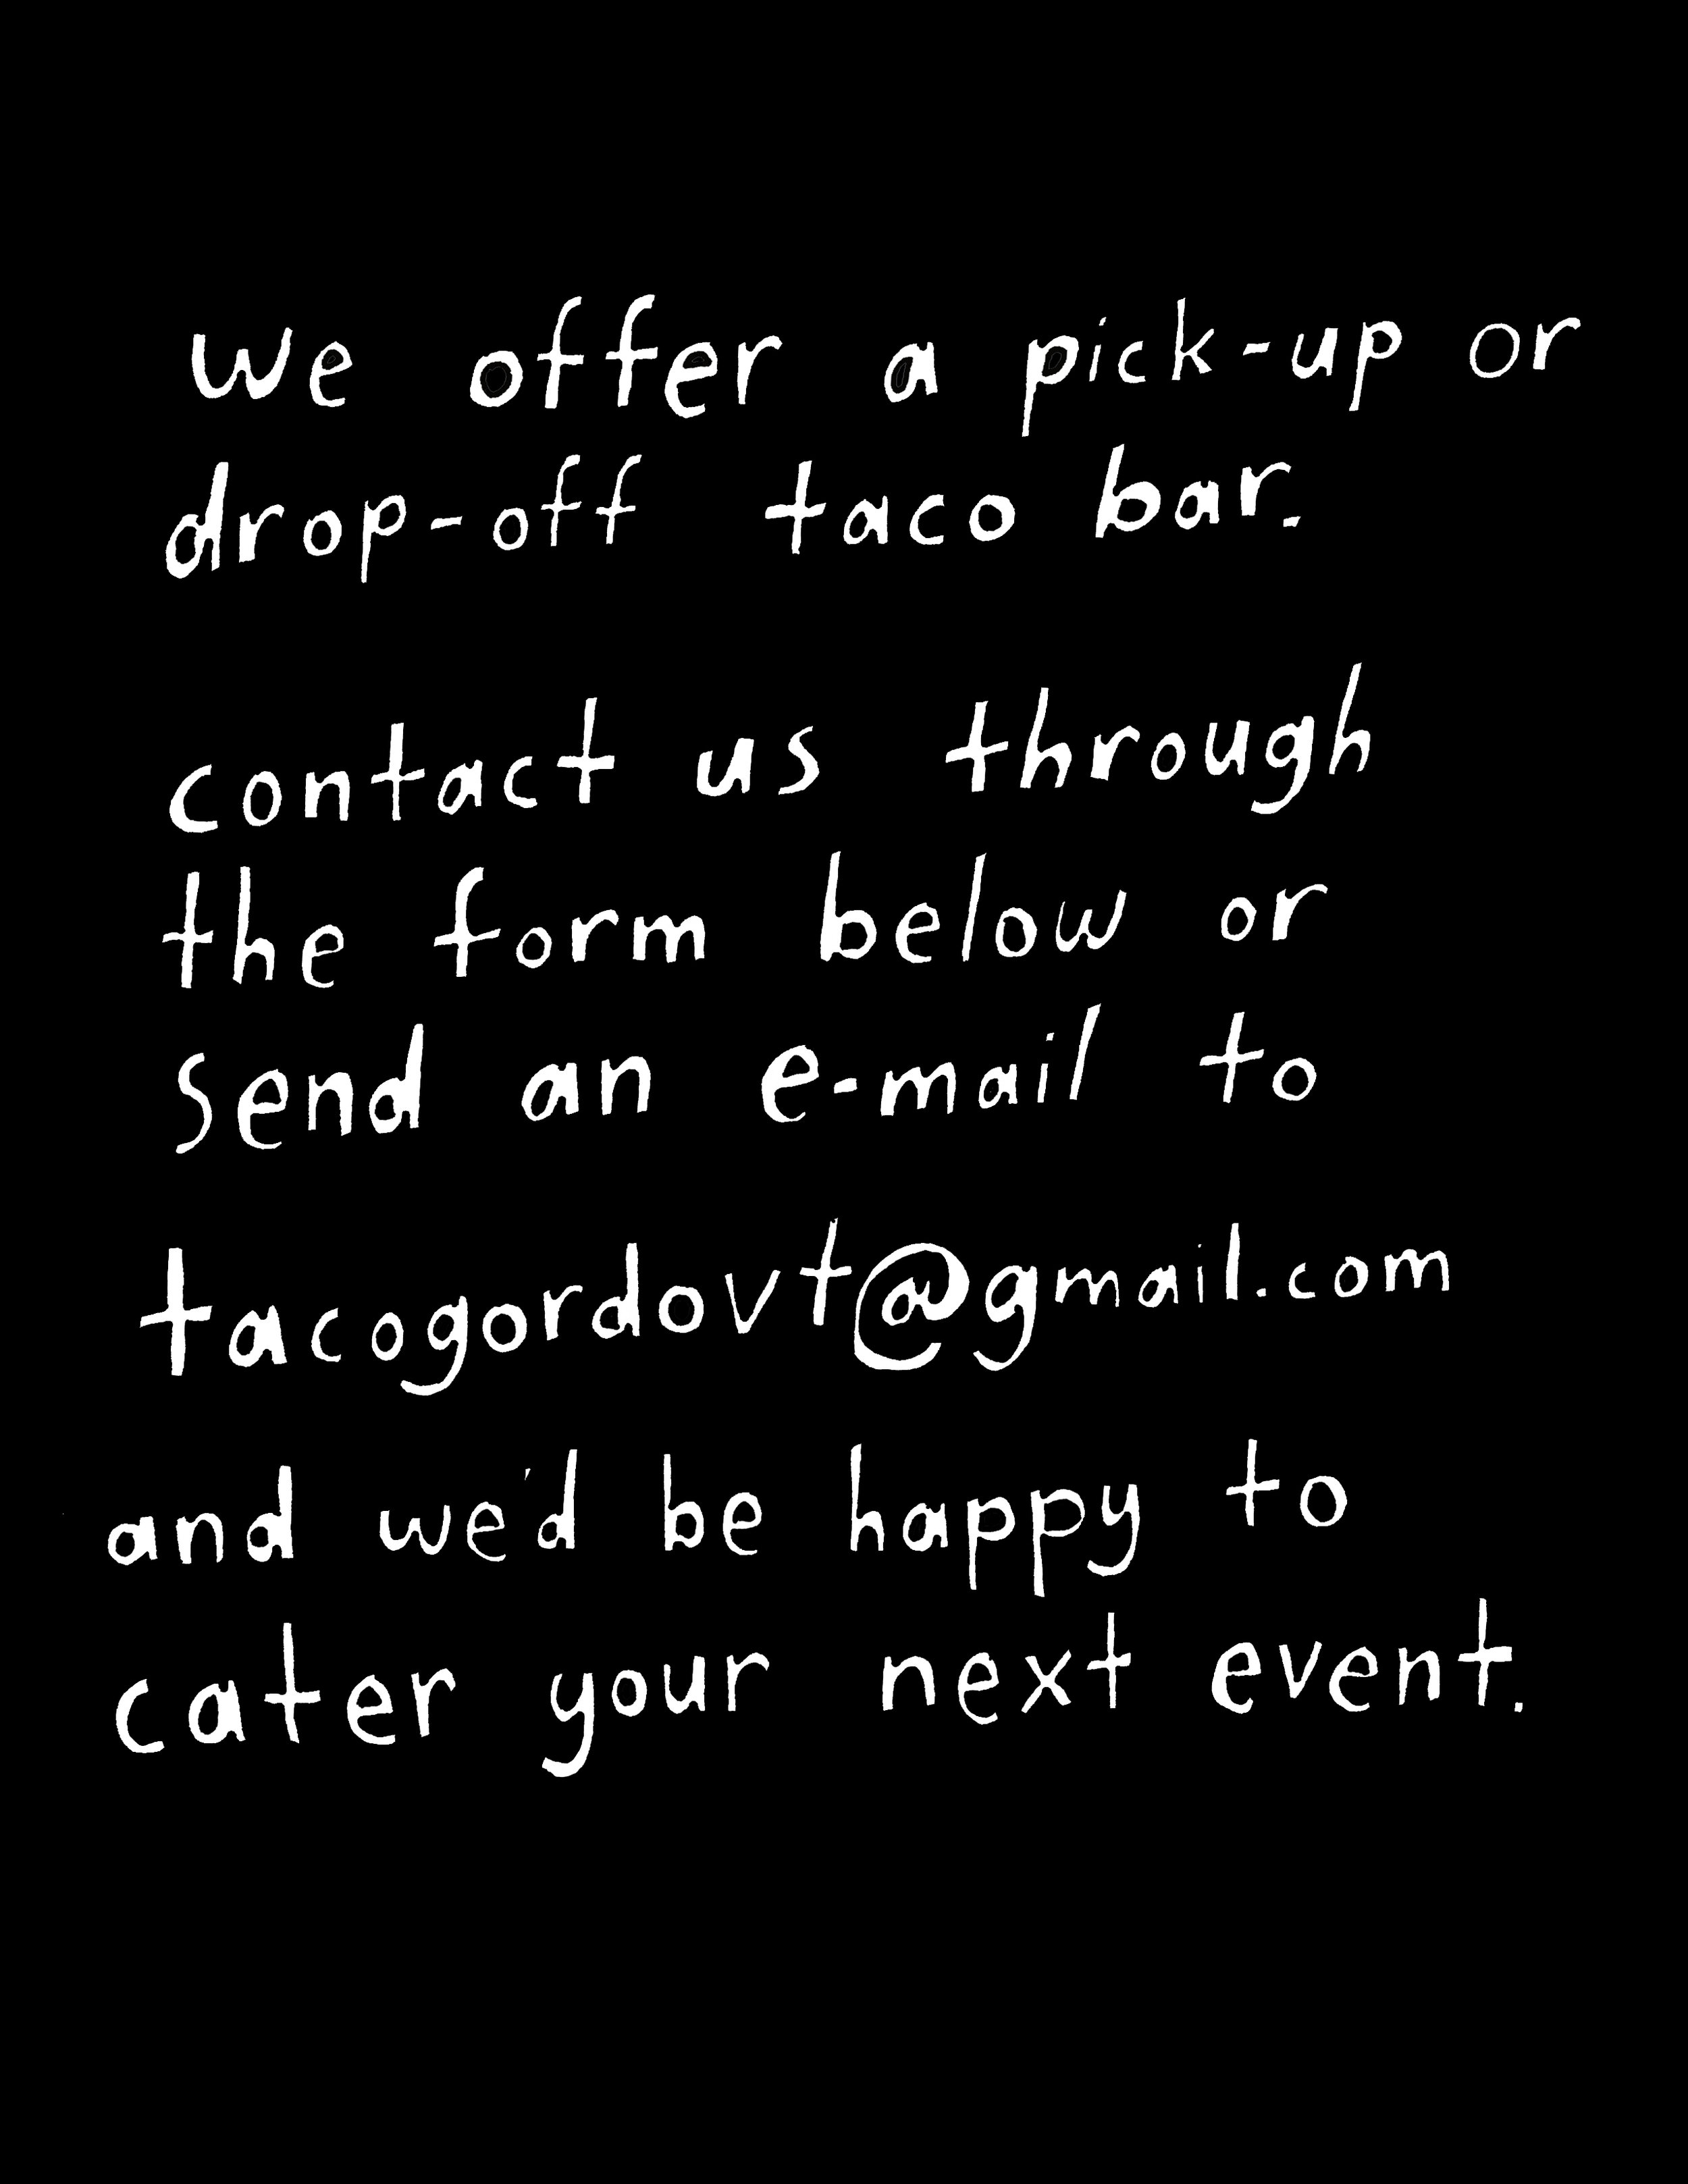 Taco Bar Catering Taco Gordo.jpg